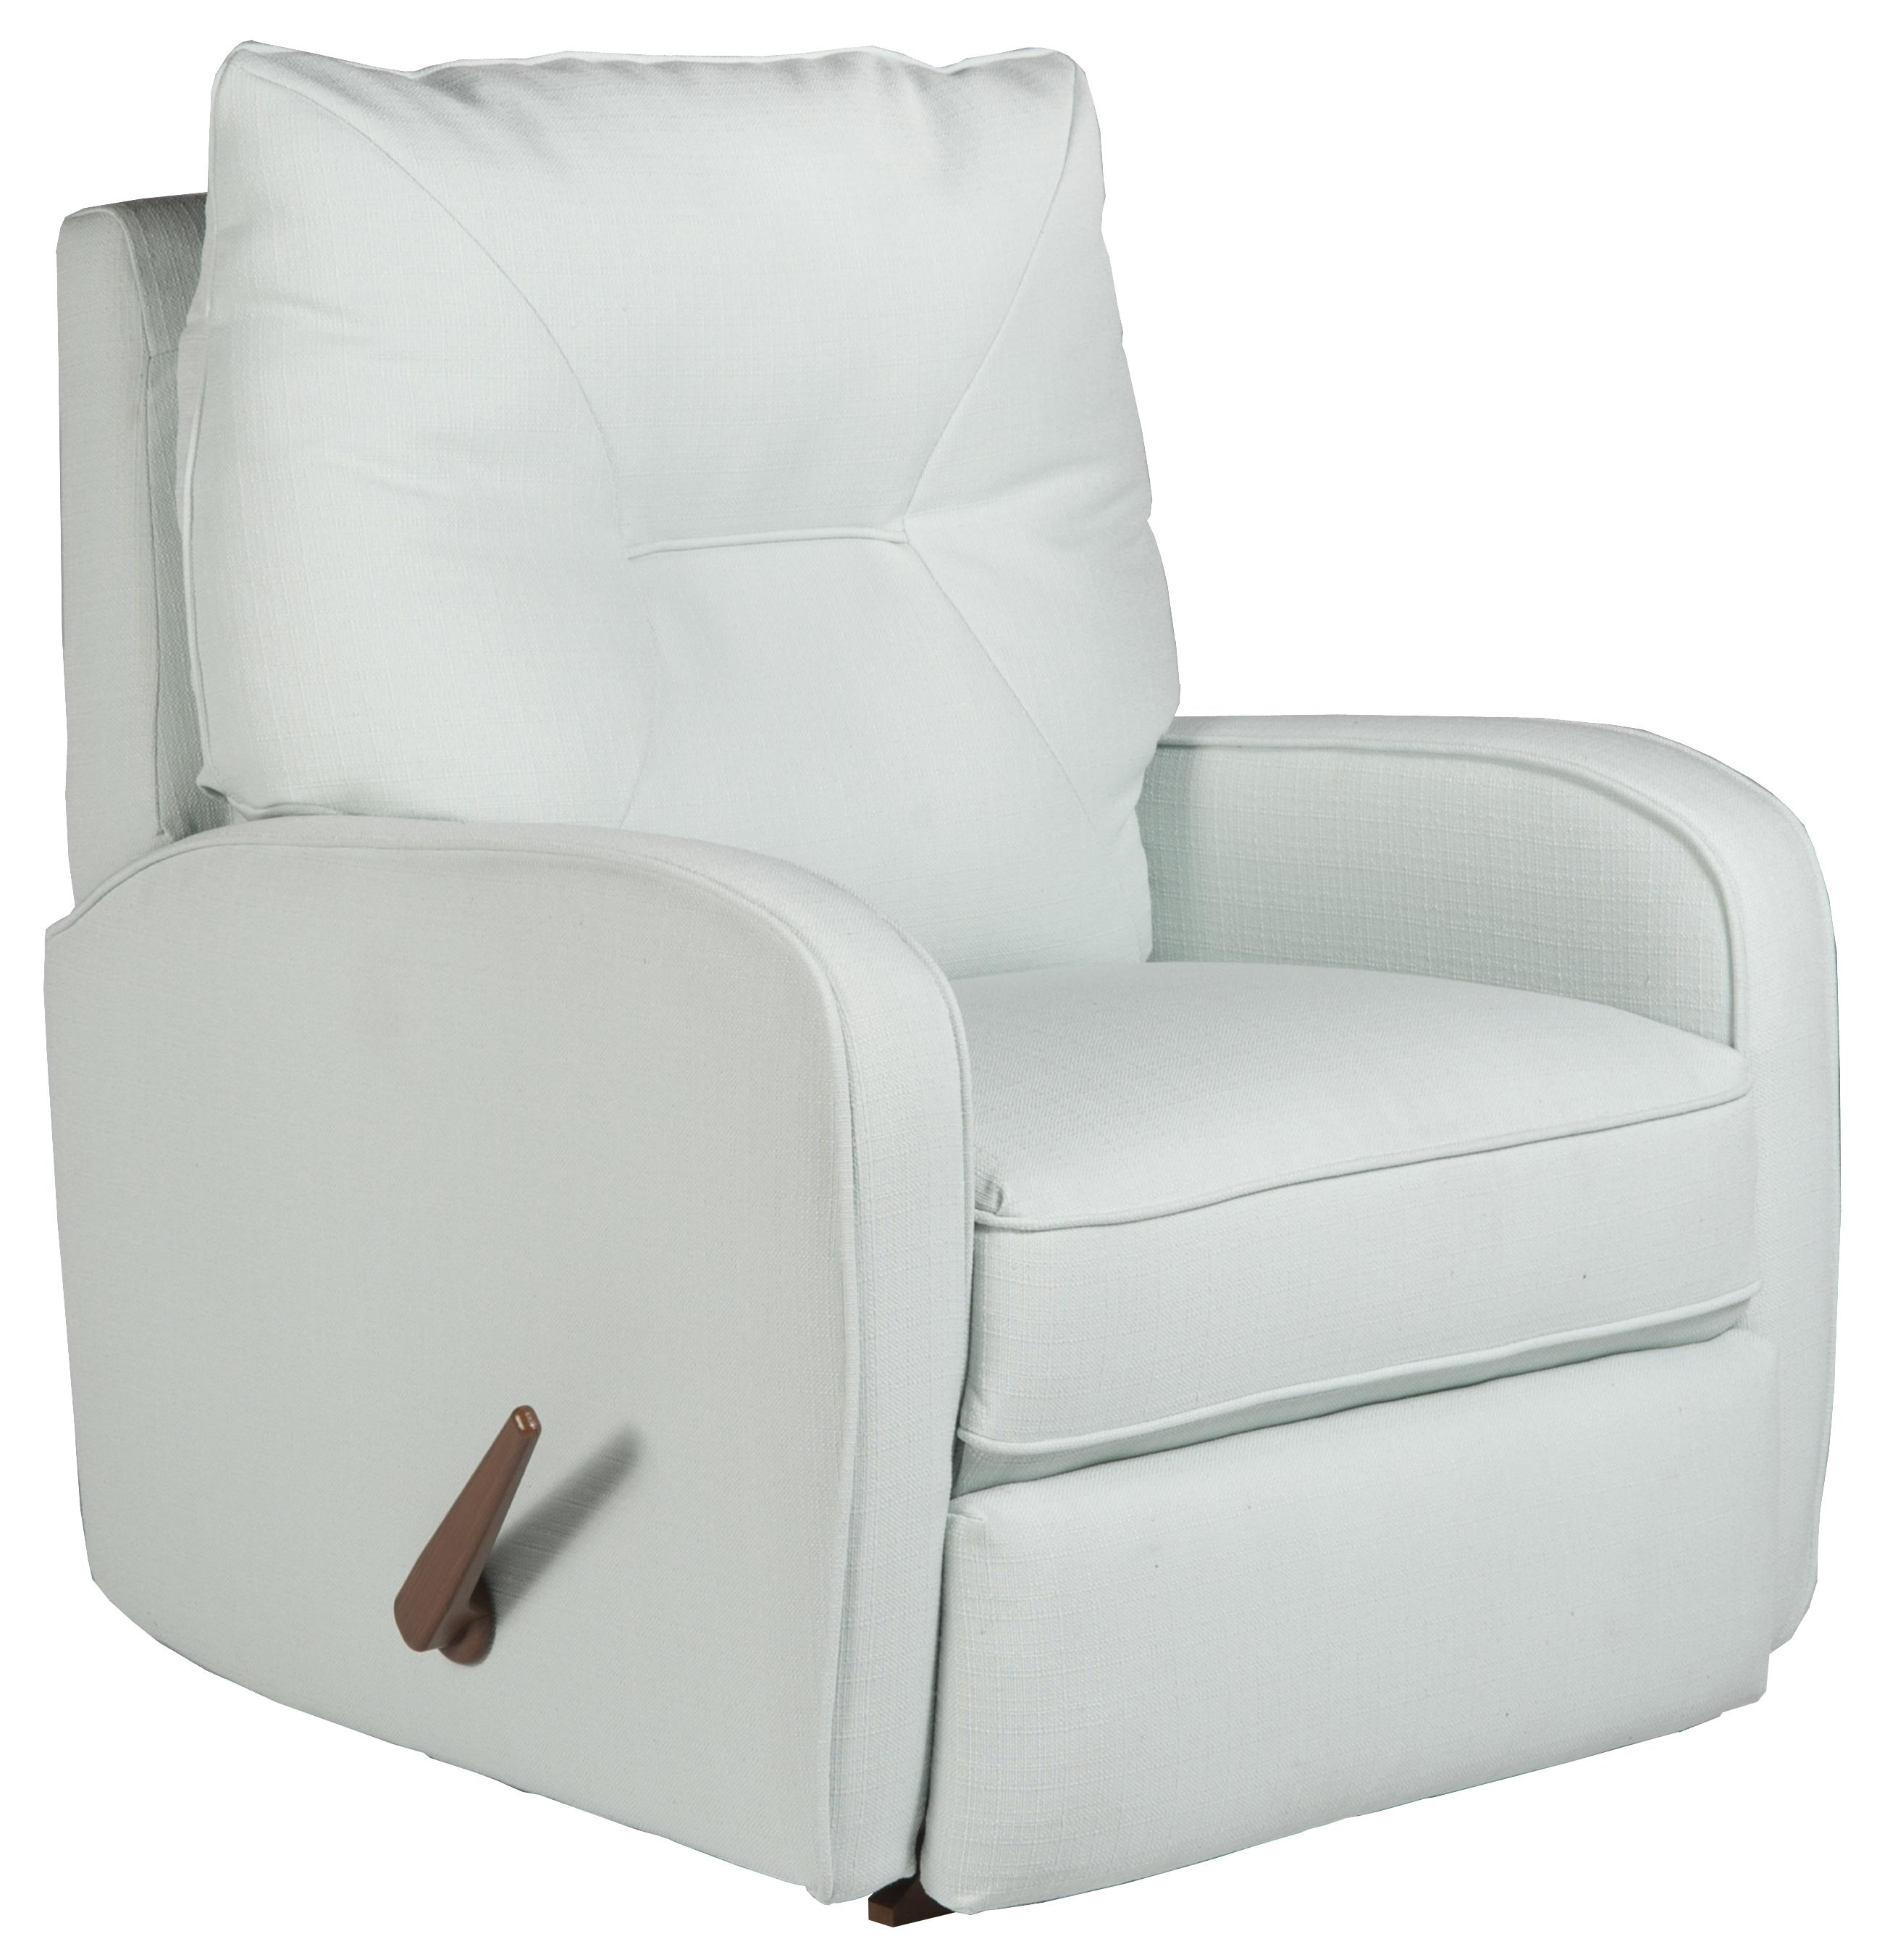 Attrayant Contemporary Ingall Swivel Rocker Recliner In Sleek Modern Style